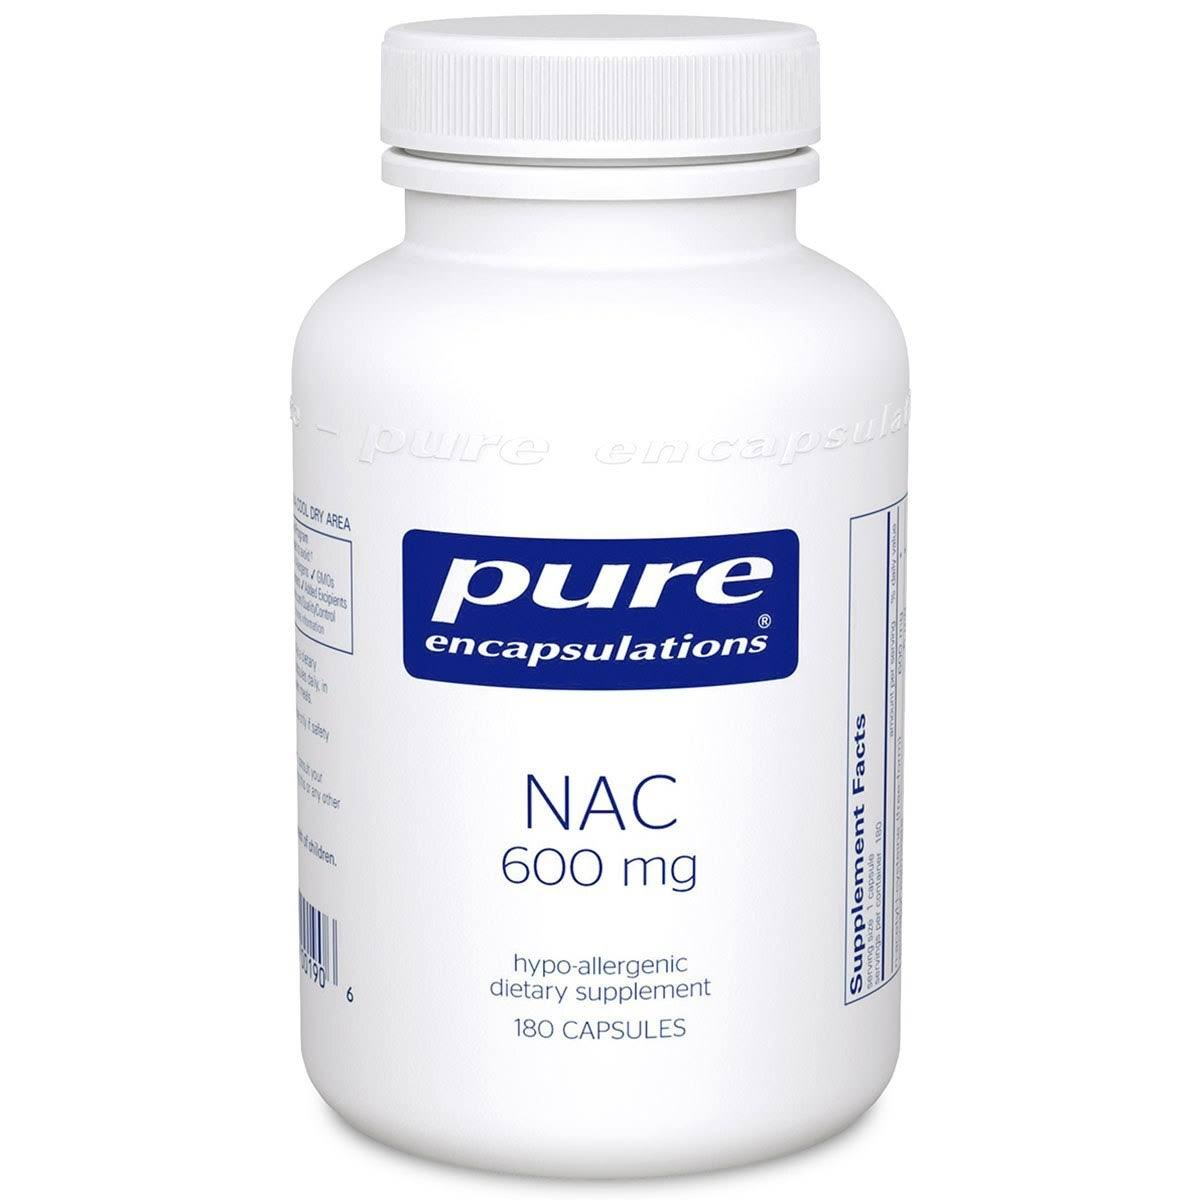 Pure Encapsulations Nac Dietary Supplement - 600mg, 180ct